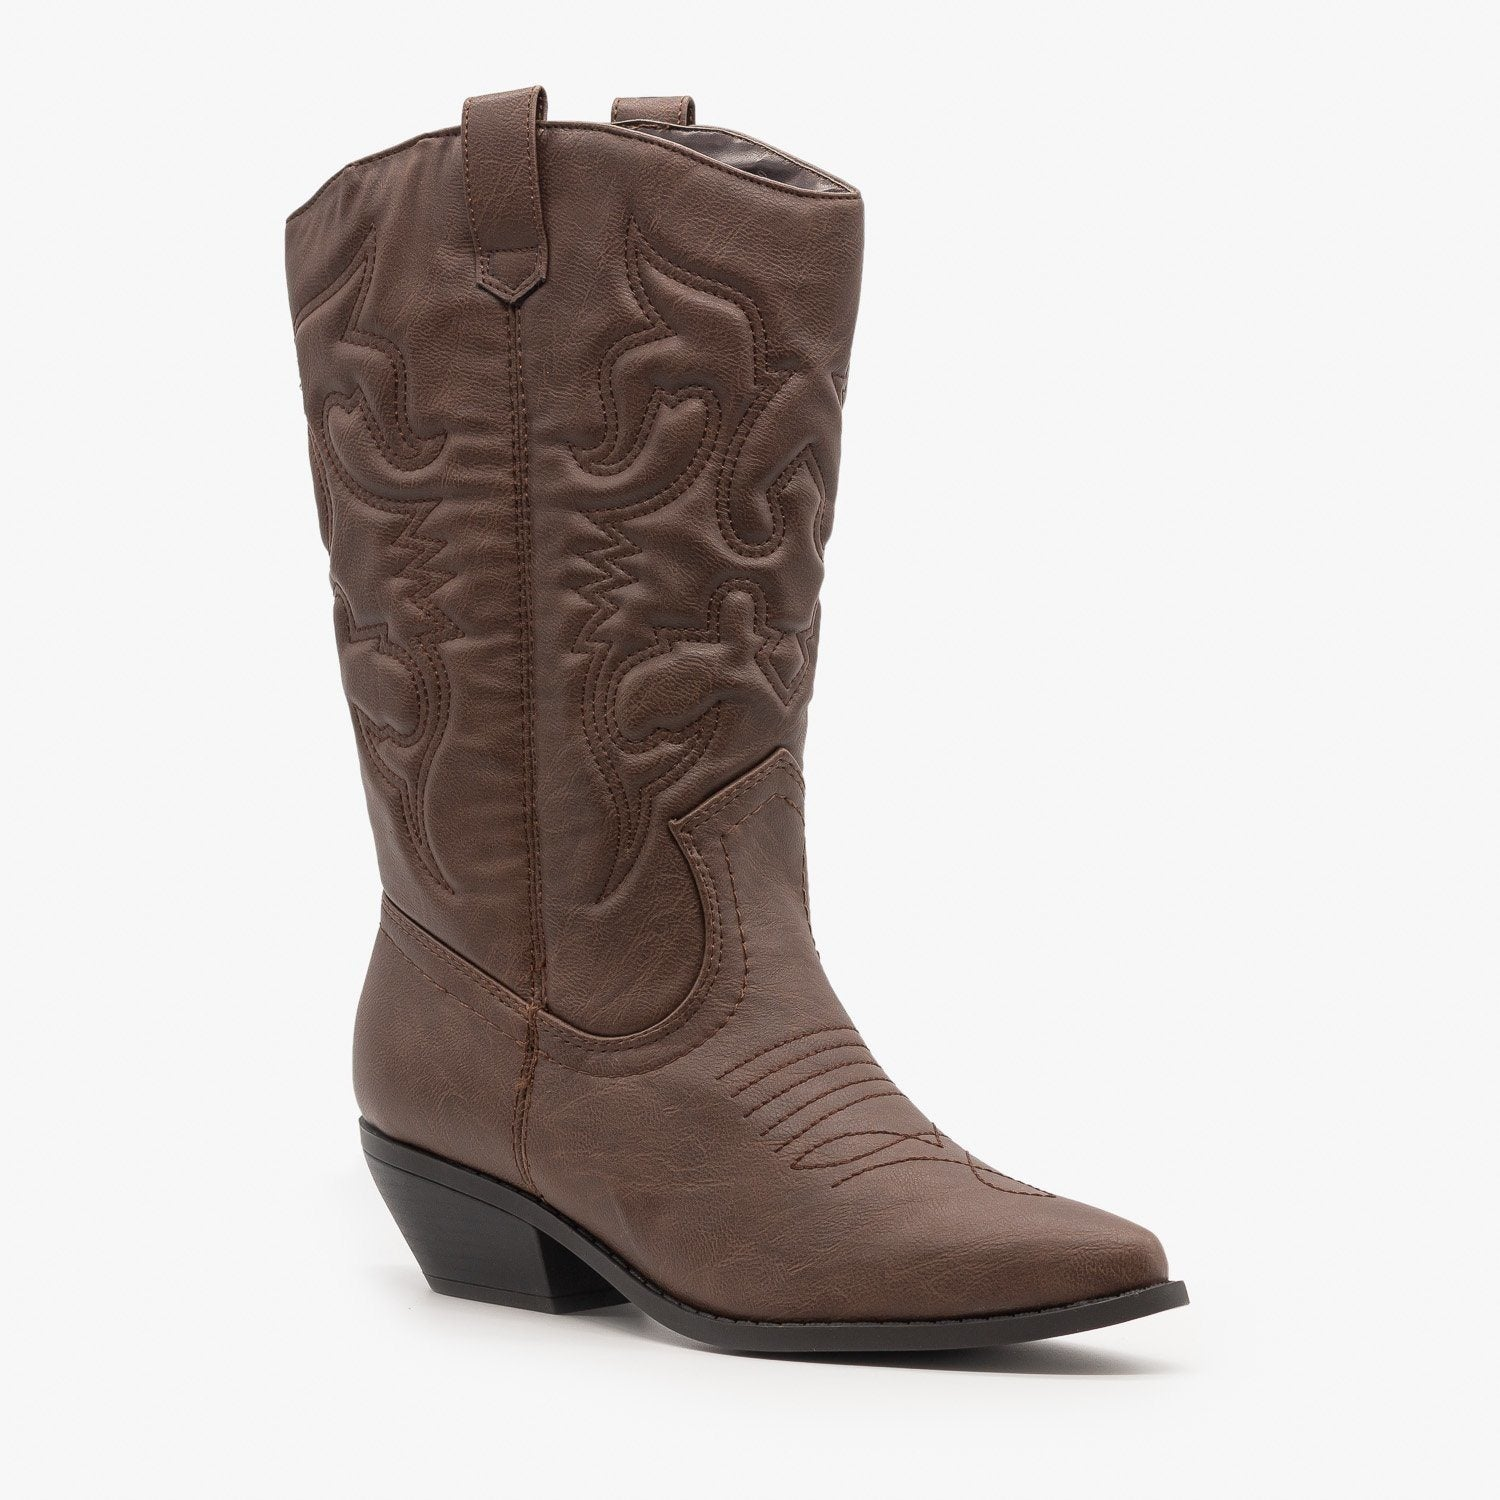 Classic Embroidered Cowboy Boots - Soda